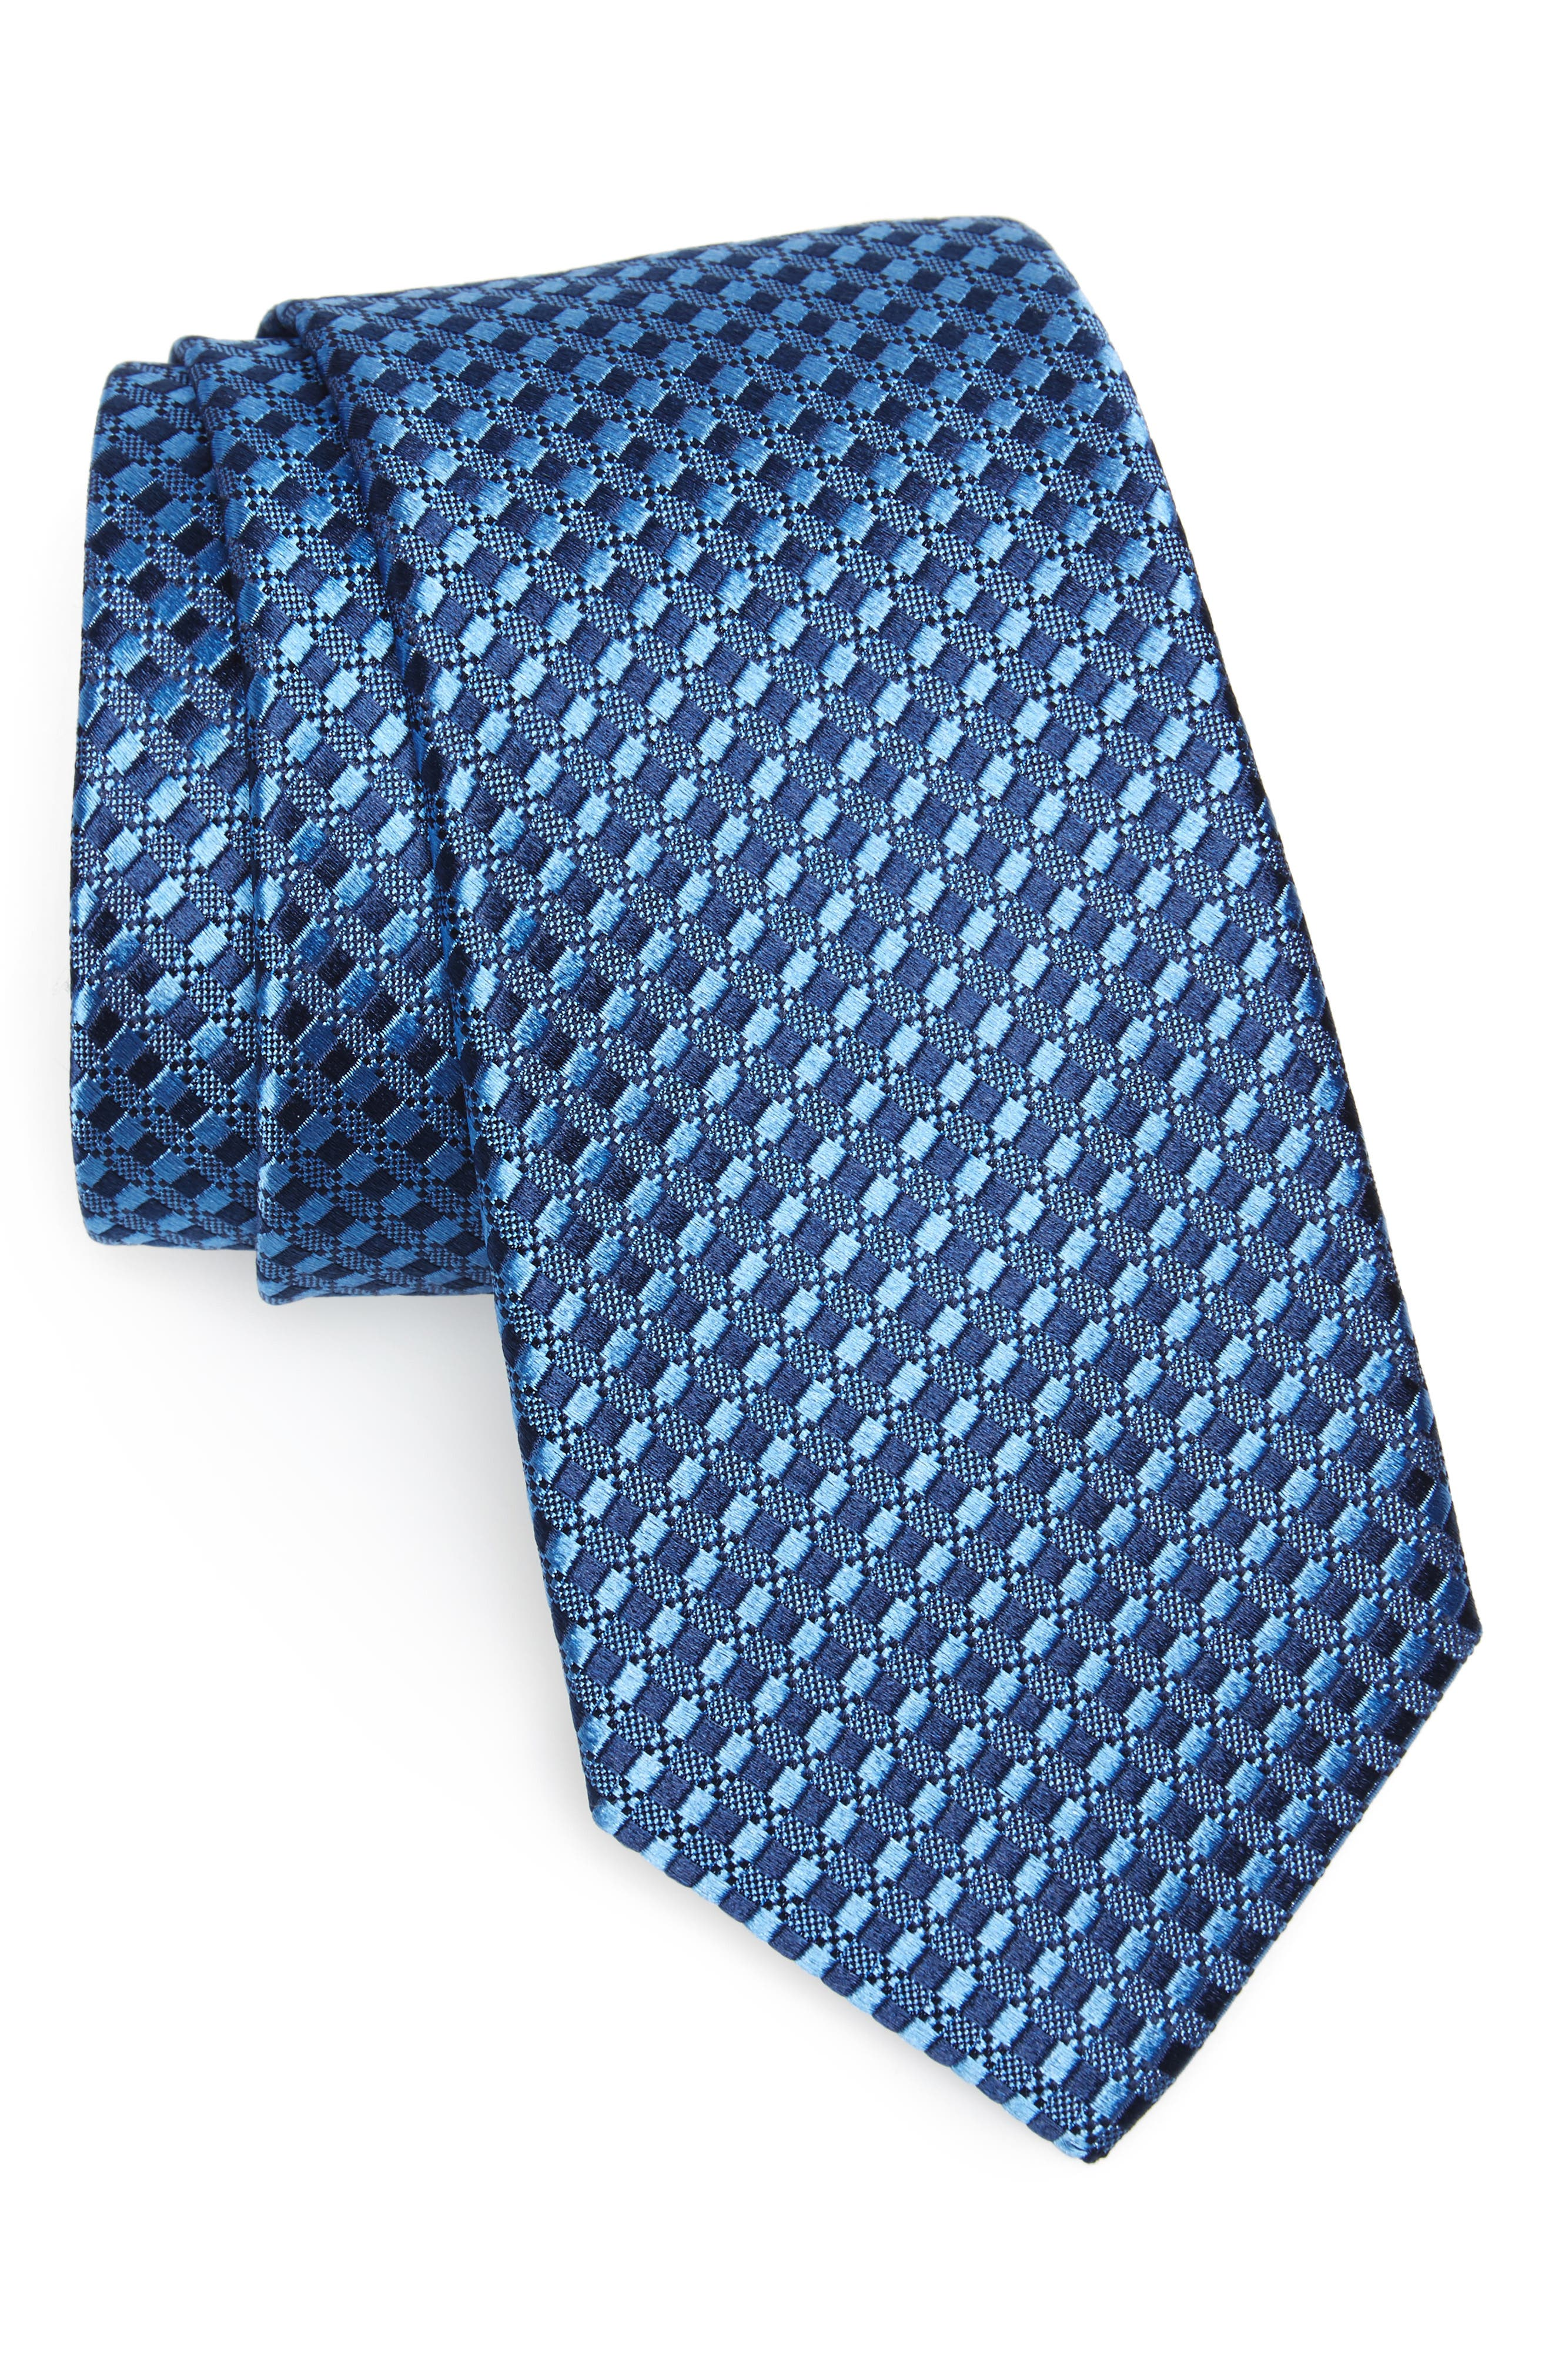 Nathan Neat Silk Tie,                         Main,                         color, NAVY